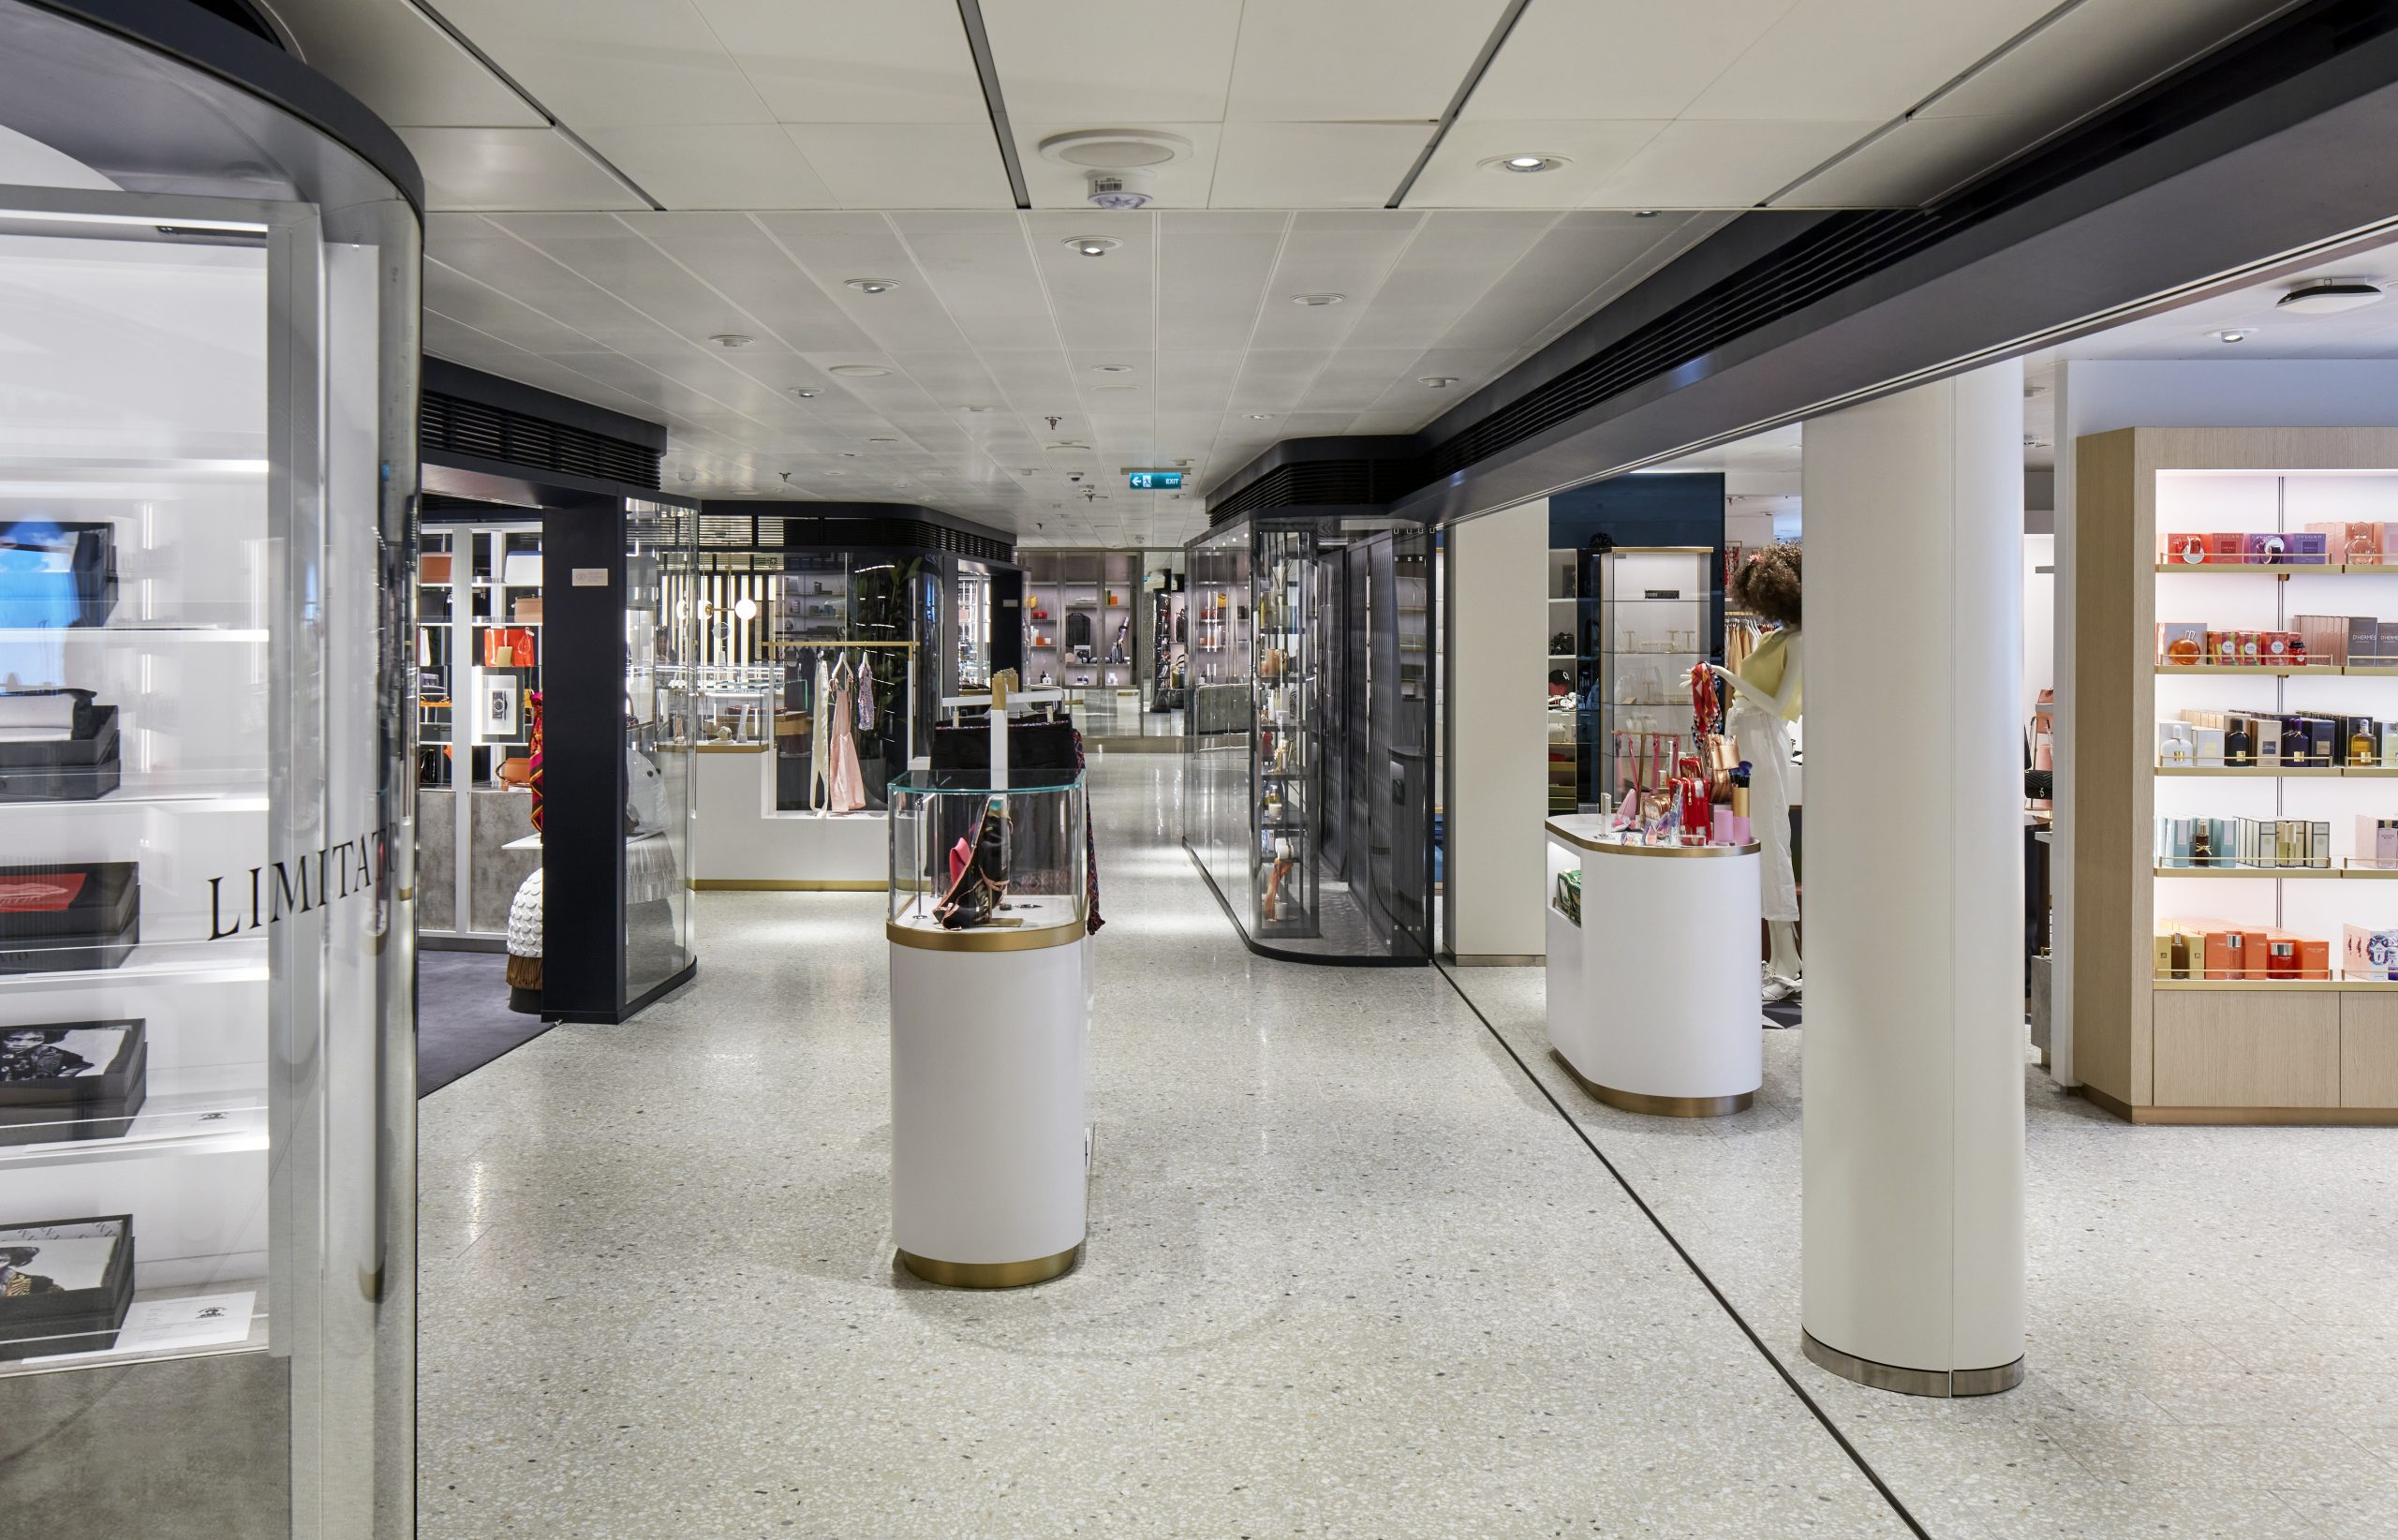 Volume Creative designs retail experience for Virgin Voyages